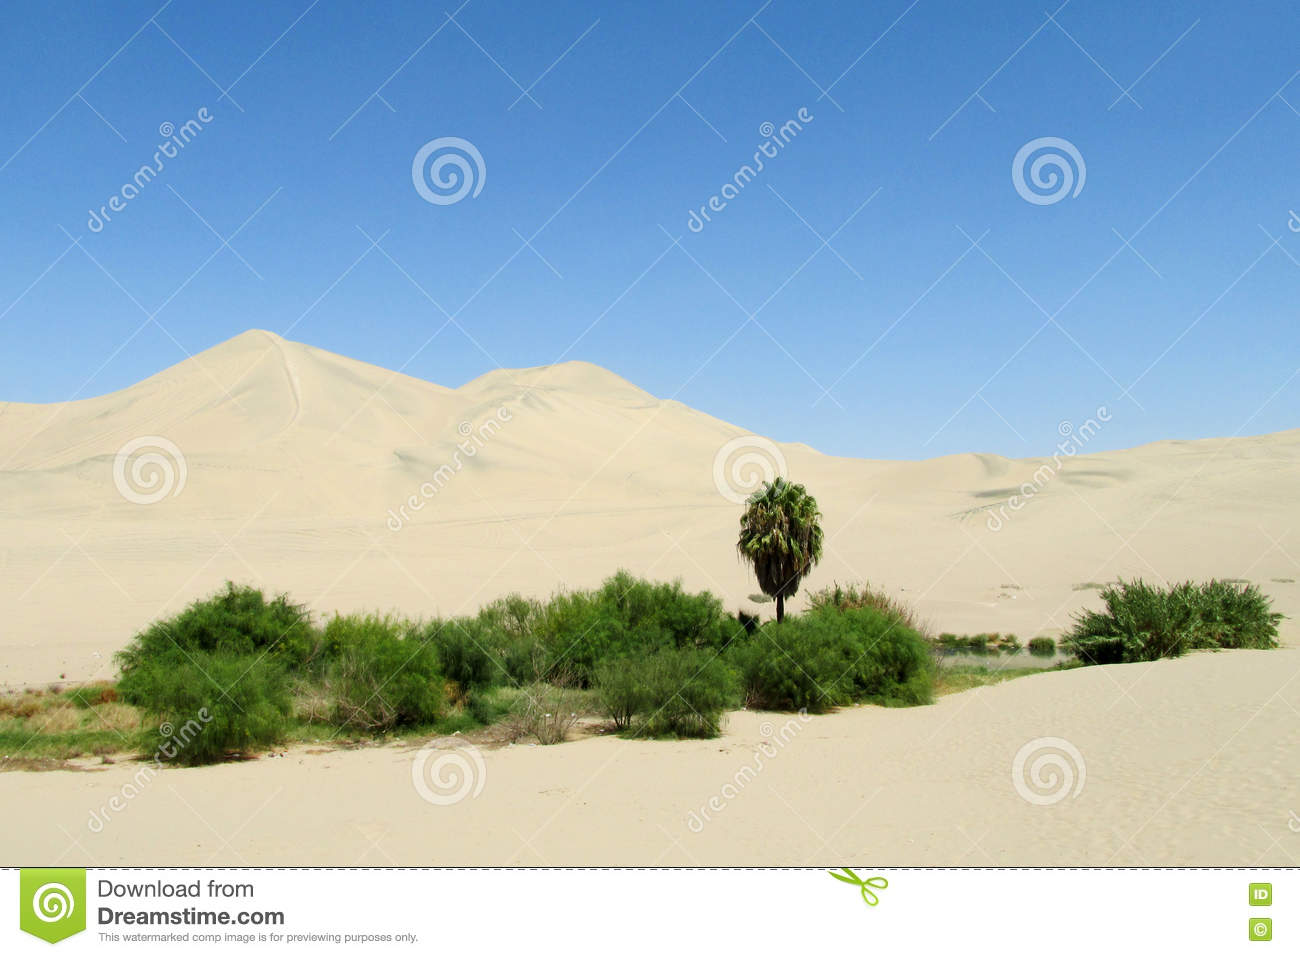 Sand desert dunes and green oasis with bushes and palm tree